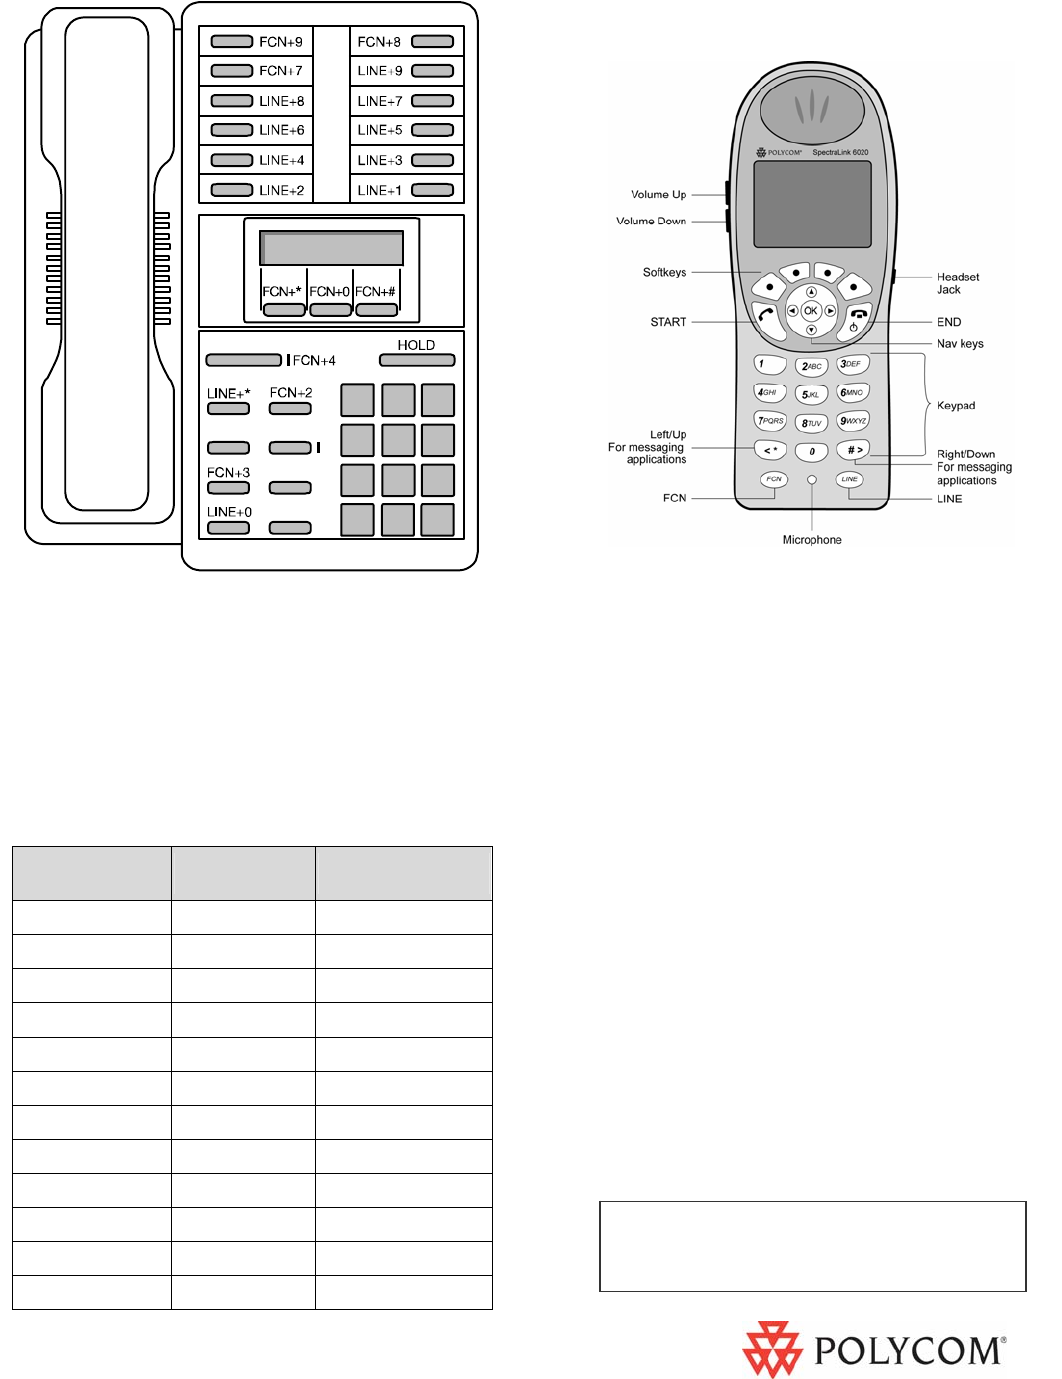 mitel 5330 quick reference guide